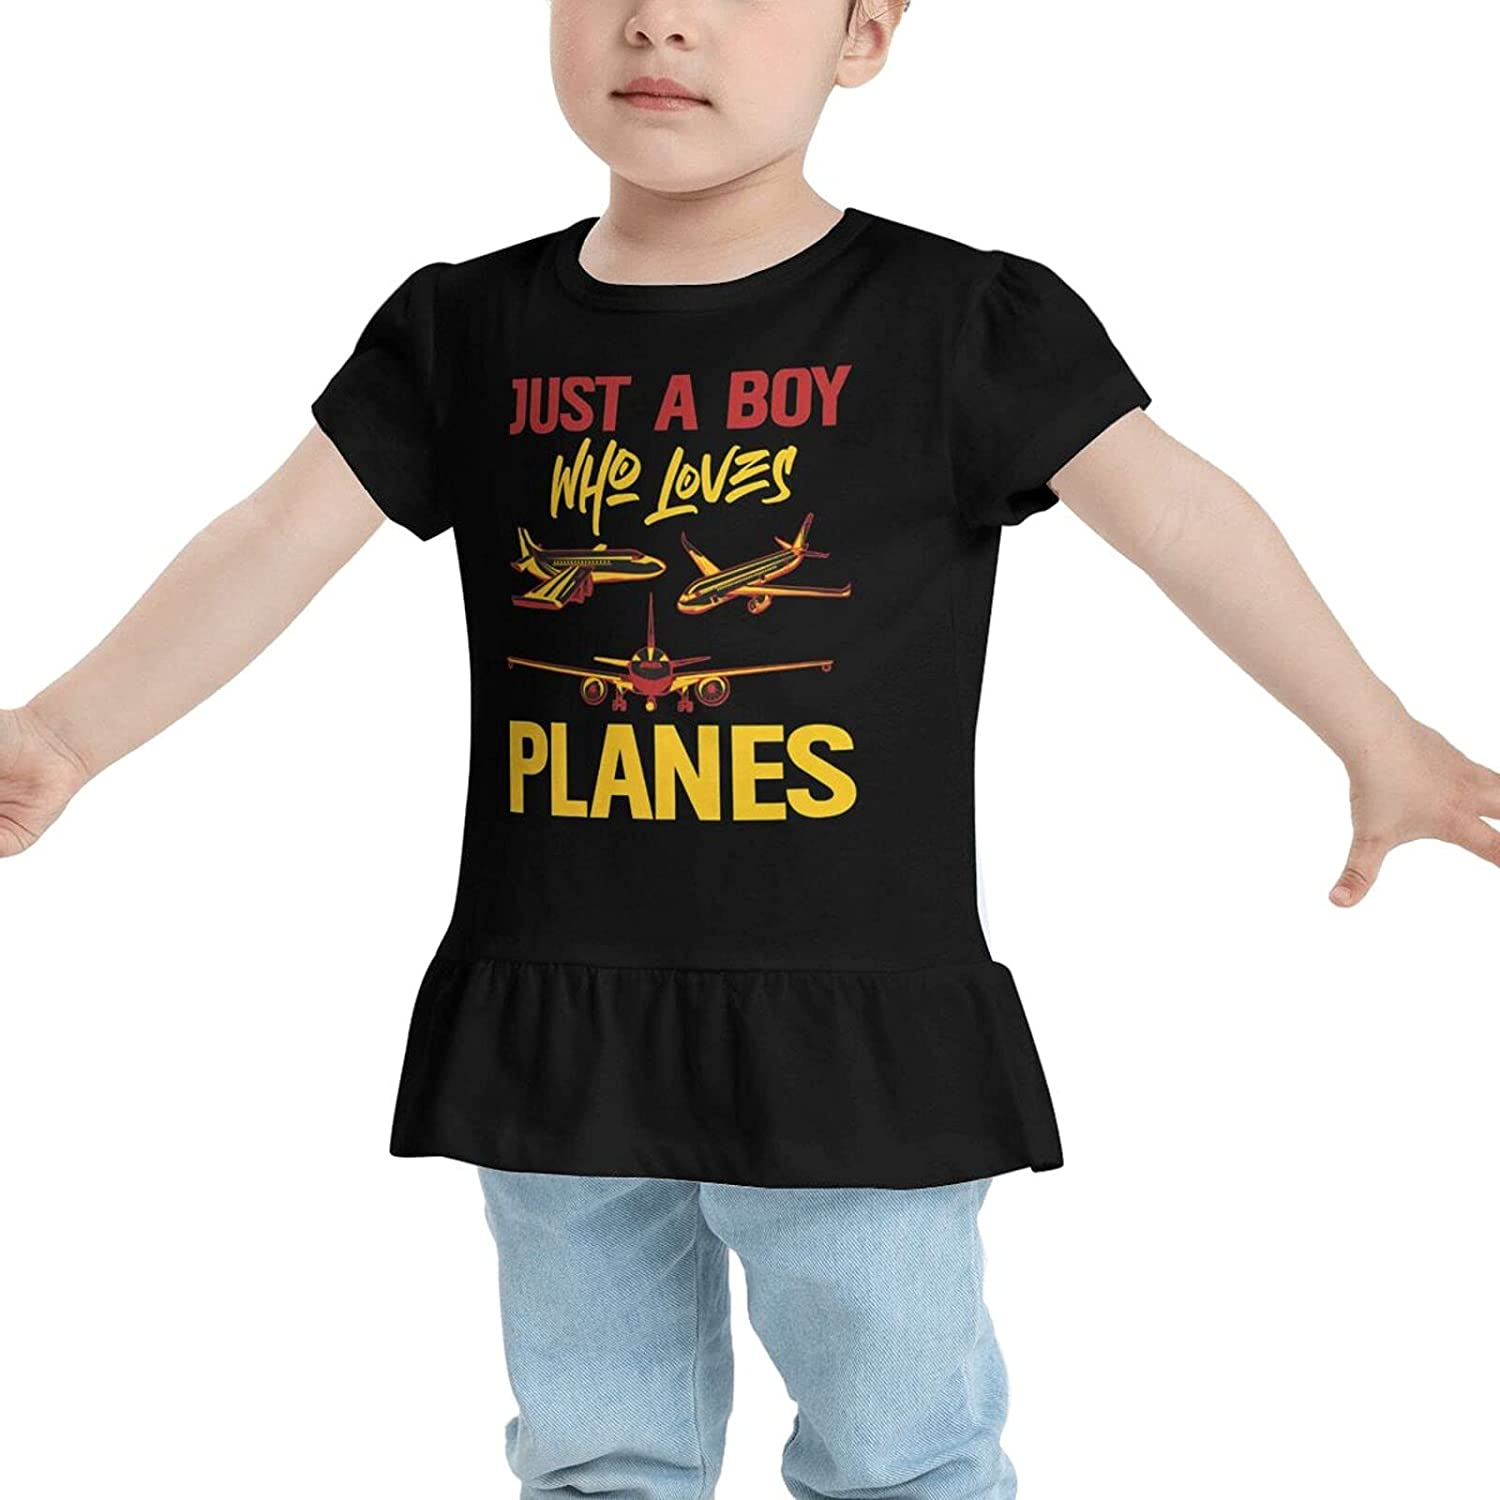 Just A Boy Who Loves Planes Children 2-6 Years Old Girls Short-Sleeved Cartoon Print Ruffled T-Shirt